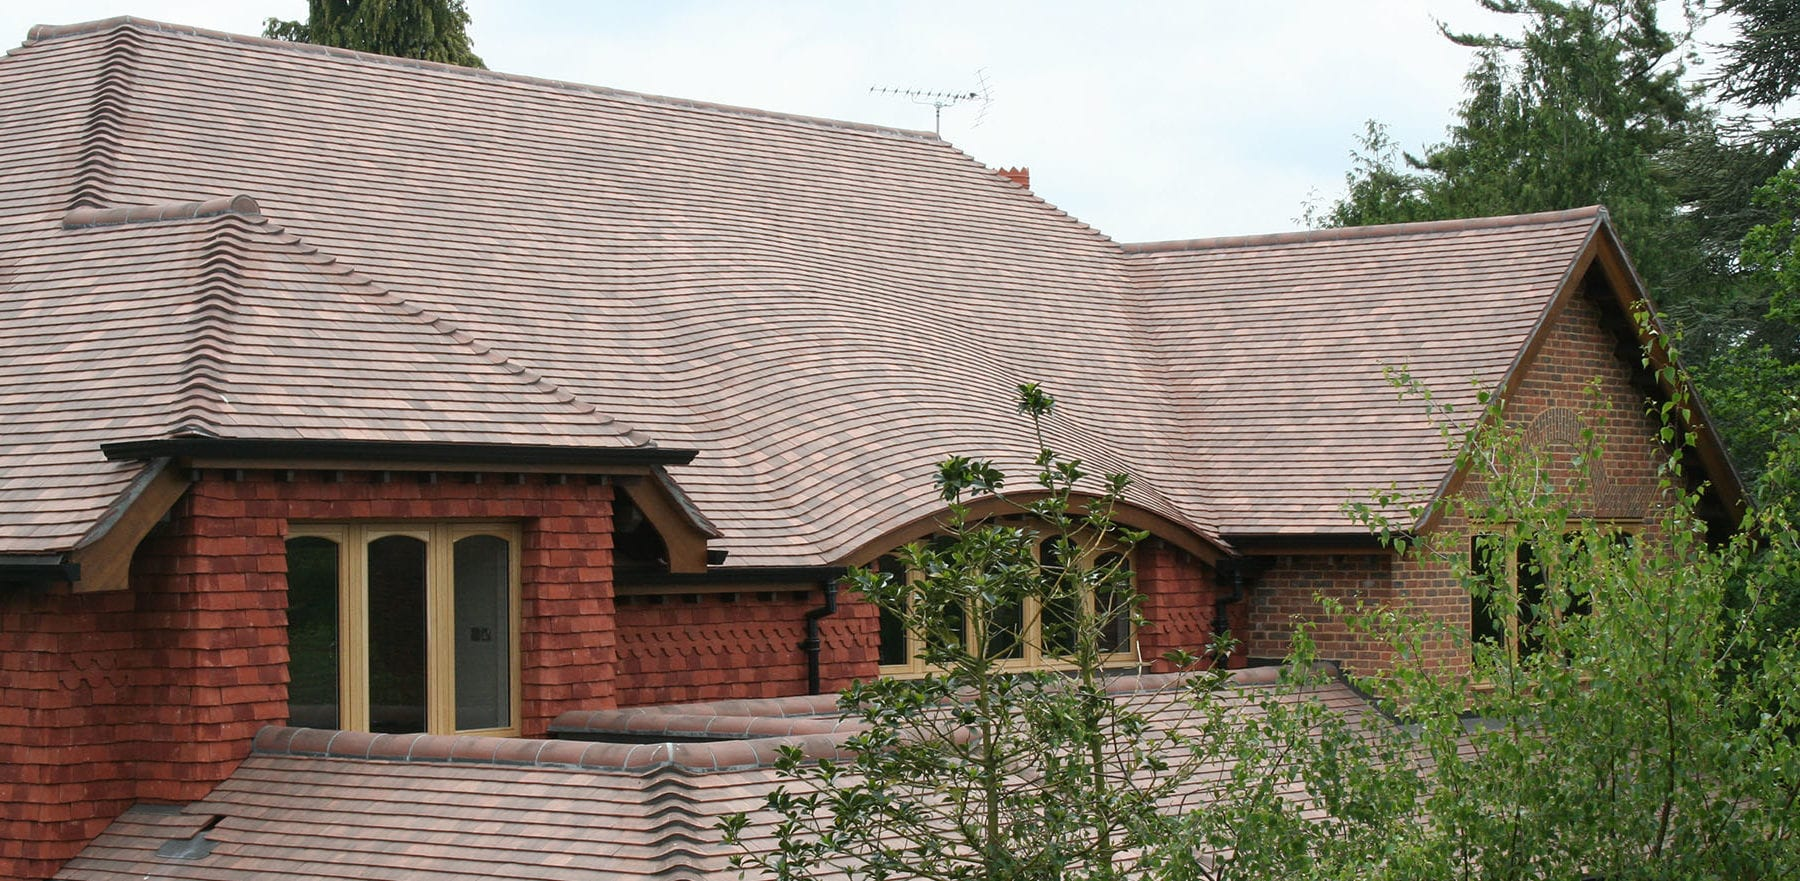 Lifestiles - Machine Made French Collection Roof Tiles - Various, England 3